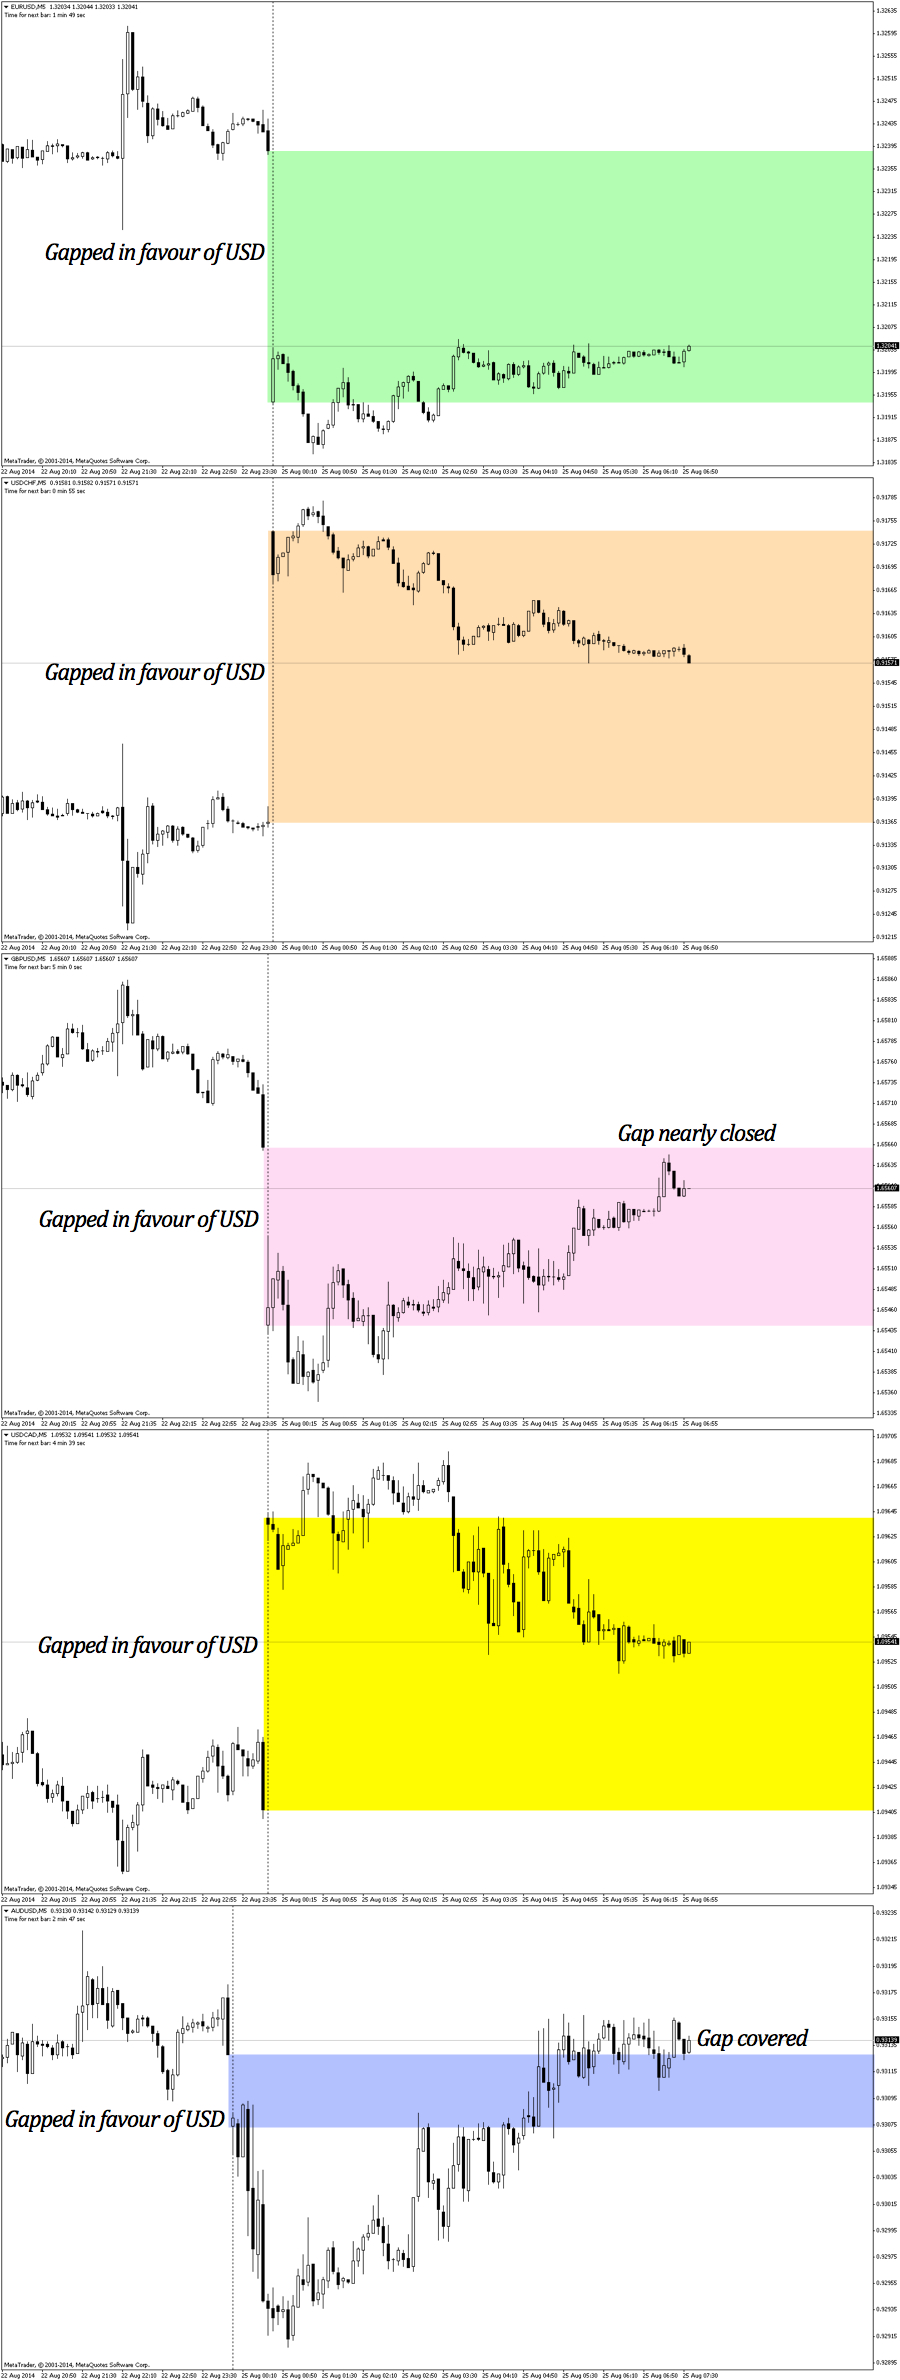 Charts of 5 dollar pairs that gapped